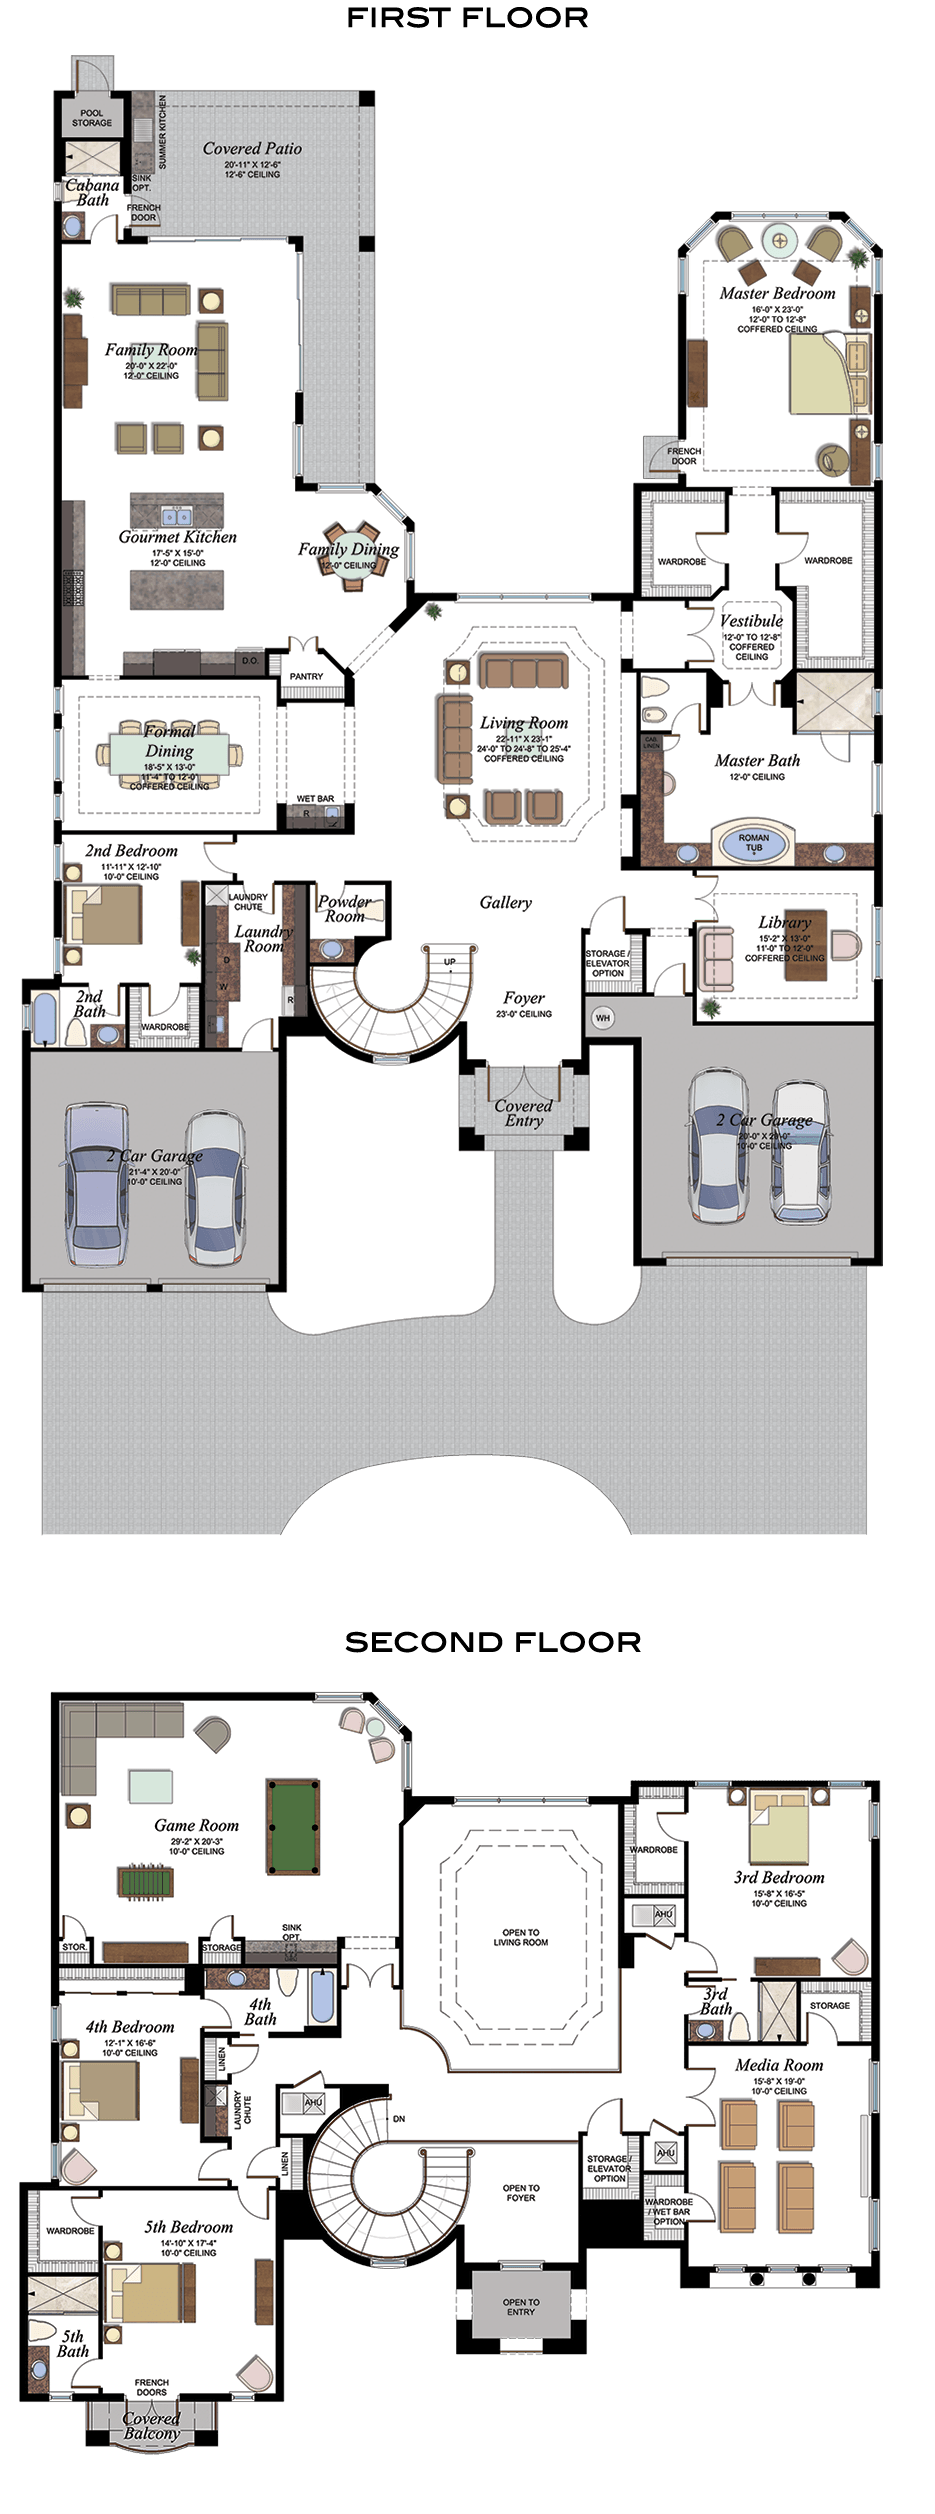 GL Homes | Houses in 2019 | House plans, New house plans ... on dormer designs, ranch painting, ranch land, stone building designs, townhouse designs, mansion designs, ranch bathroom, bungalow designs, farmhouse designs, ranch interior design, antique shop designs, ranch art, ranch houses with stone fronts, ranch photography,